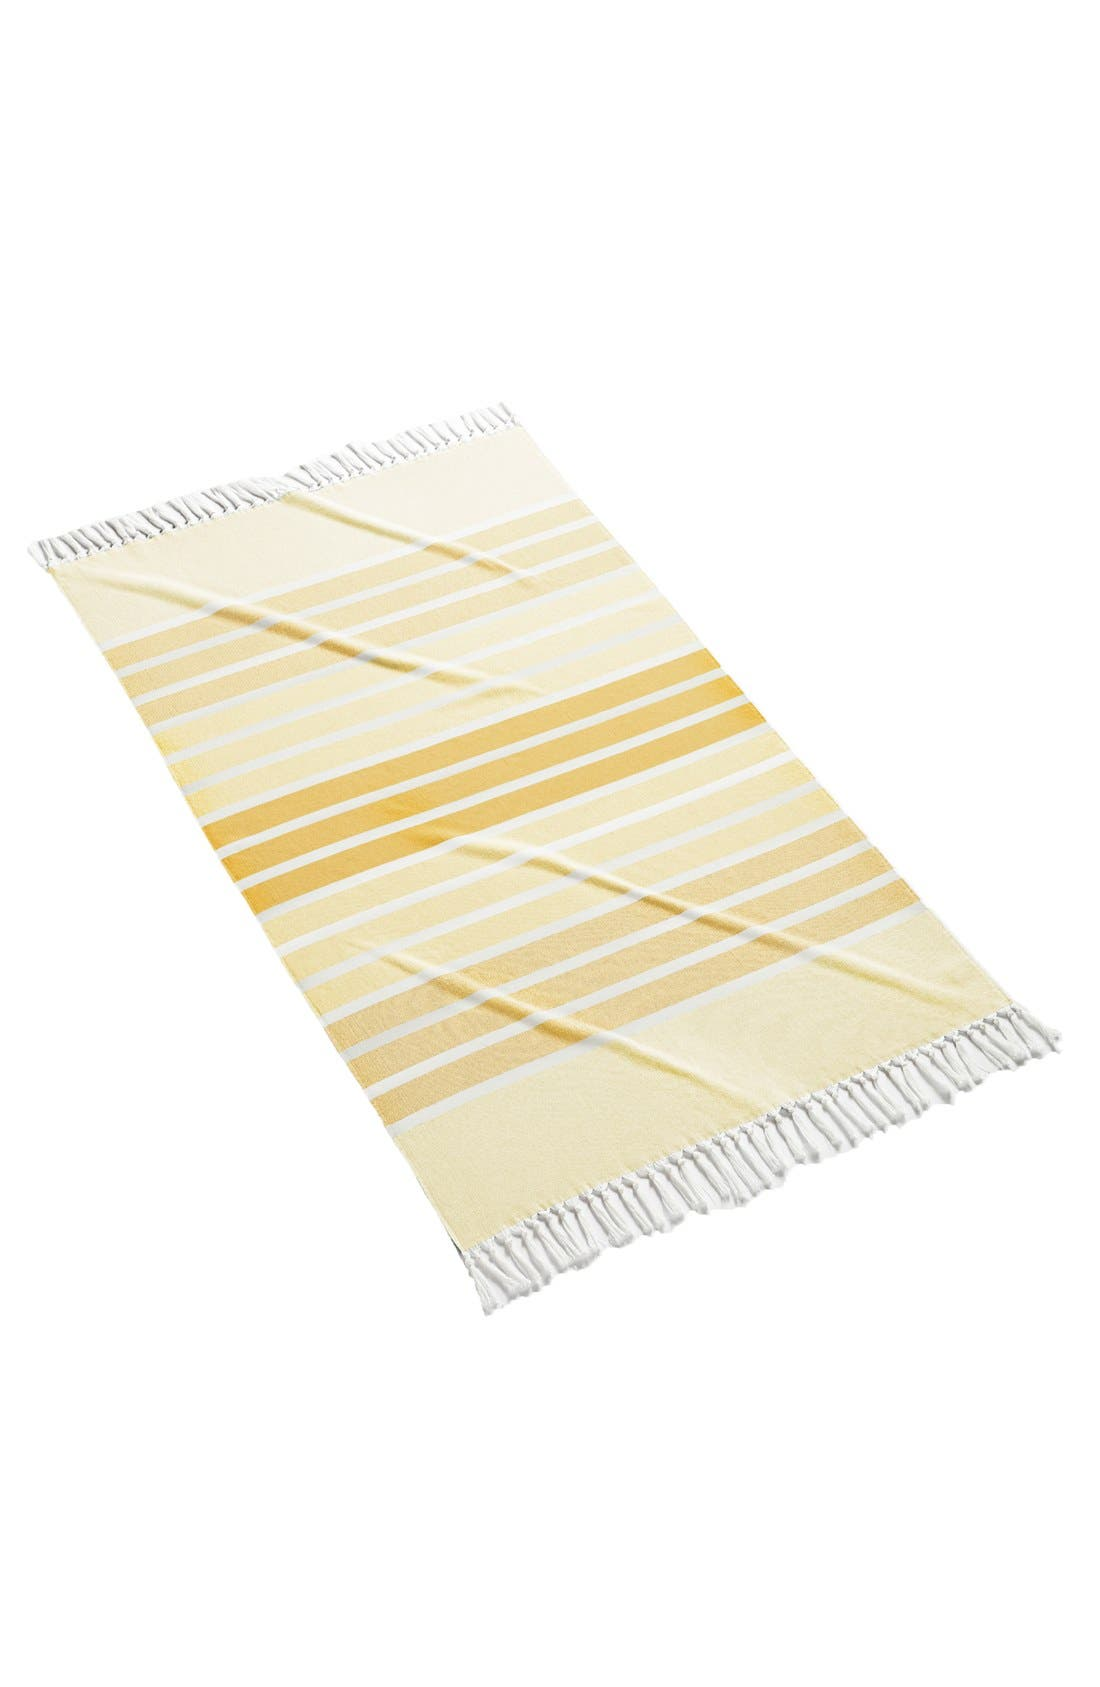 'Bodrum' Cotton Beach Towel,                             Main thumbnail 1, color,                             Yellow